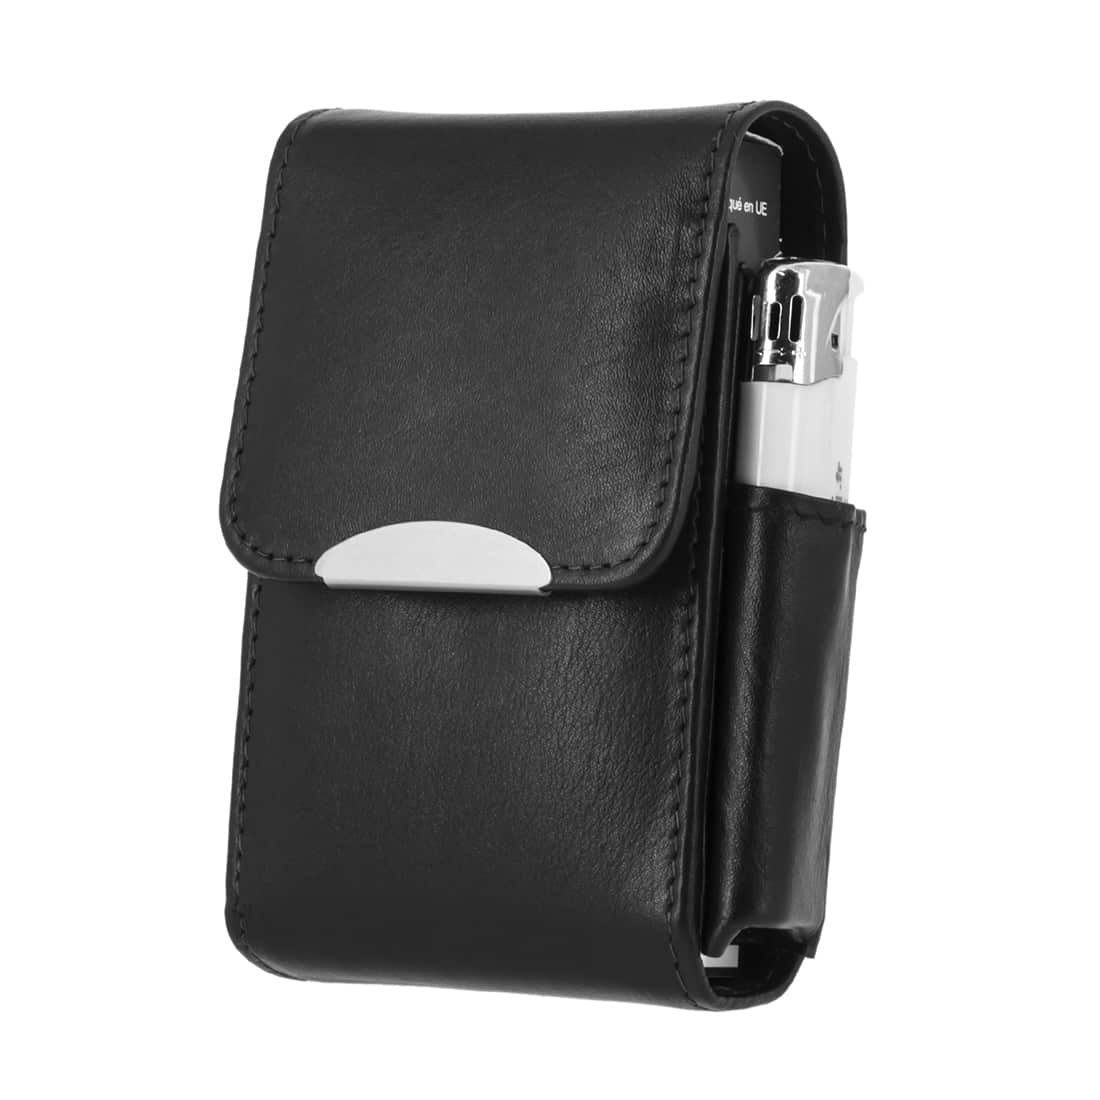 Photo de Etui paquet de cigarettes et Briquet CC049 Noir Chacom